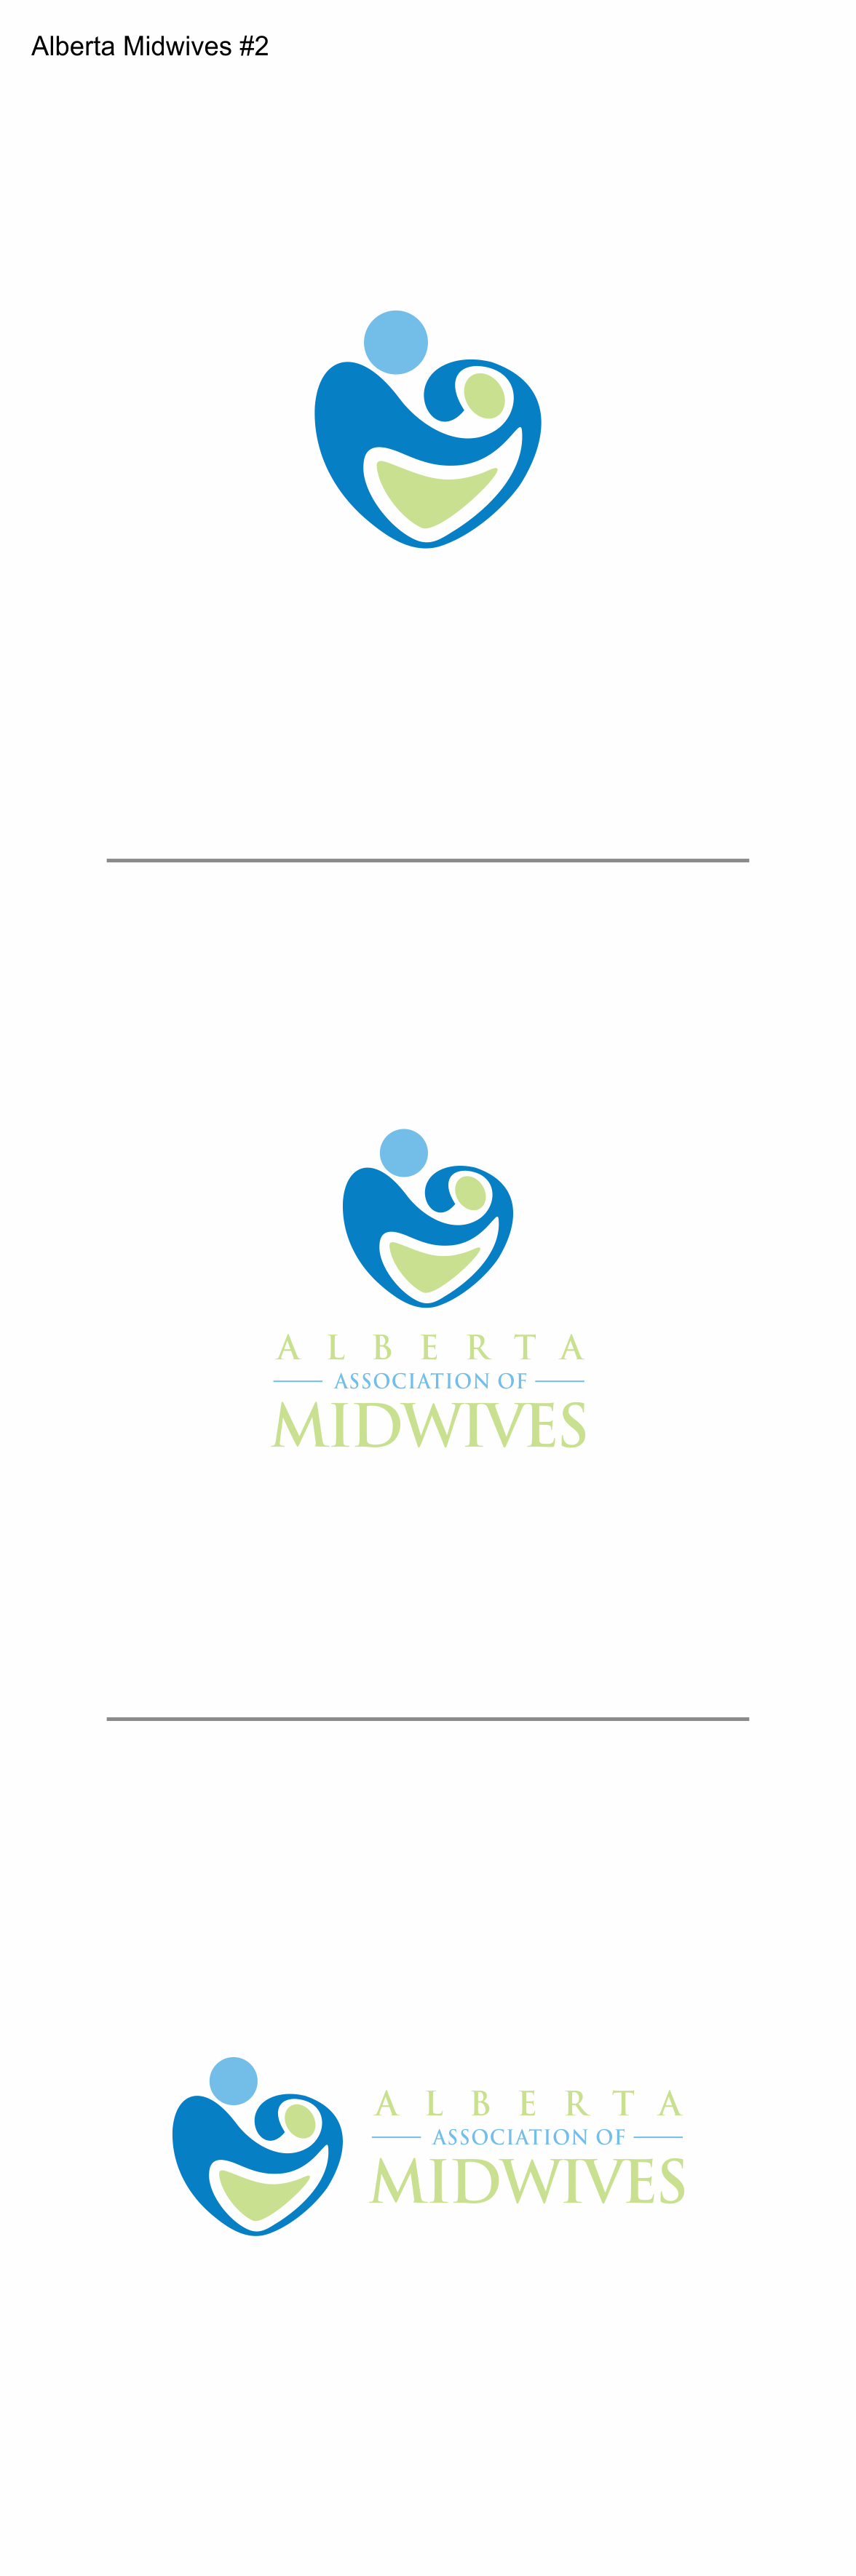 Support midwives, help us refresh our logo!